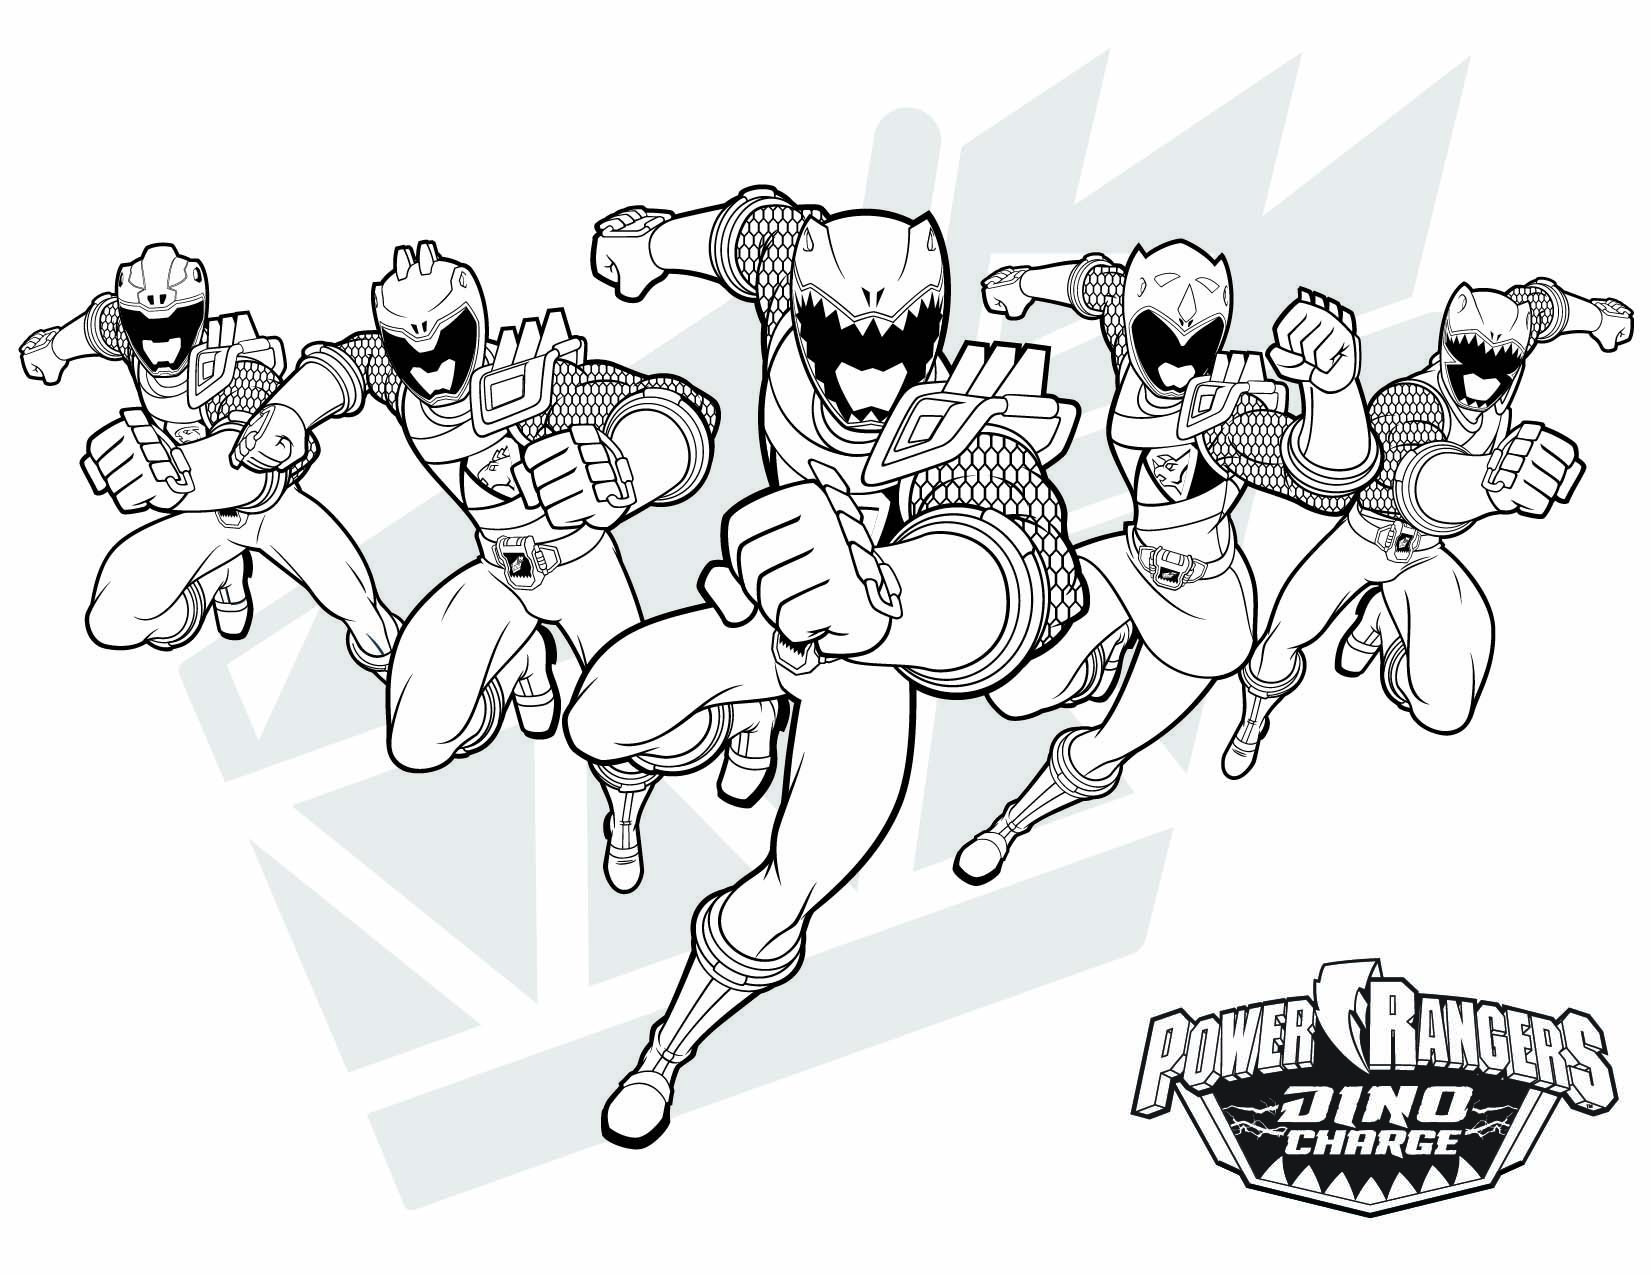 8 Power Rangers Coloring Pages Ideas Power Rangers Coloring Pages Power Rangers Coloring Pages